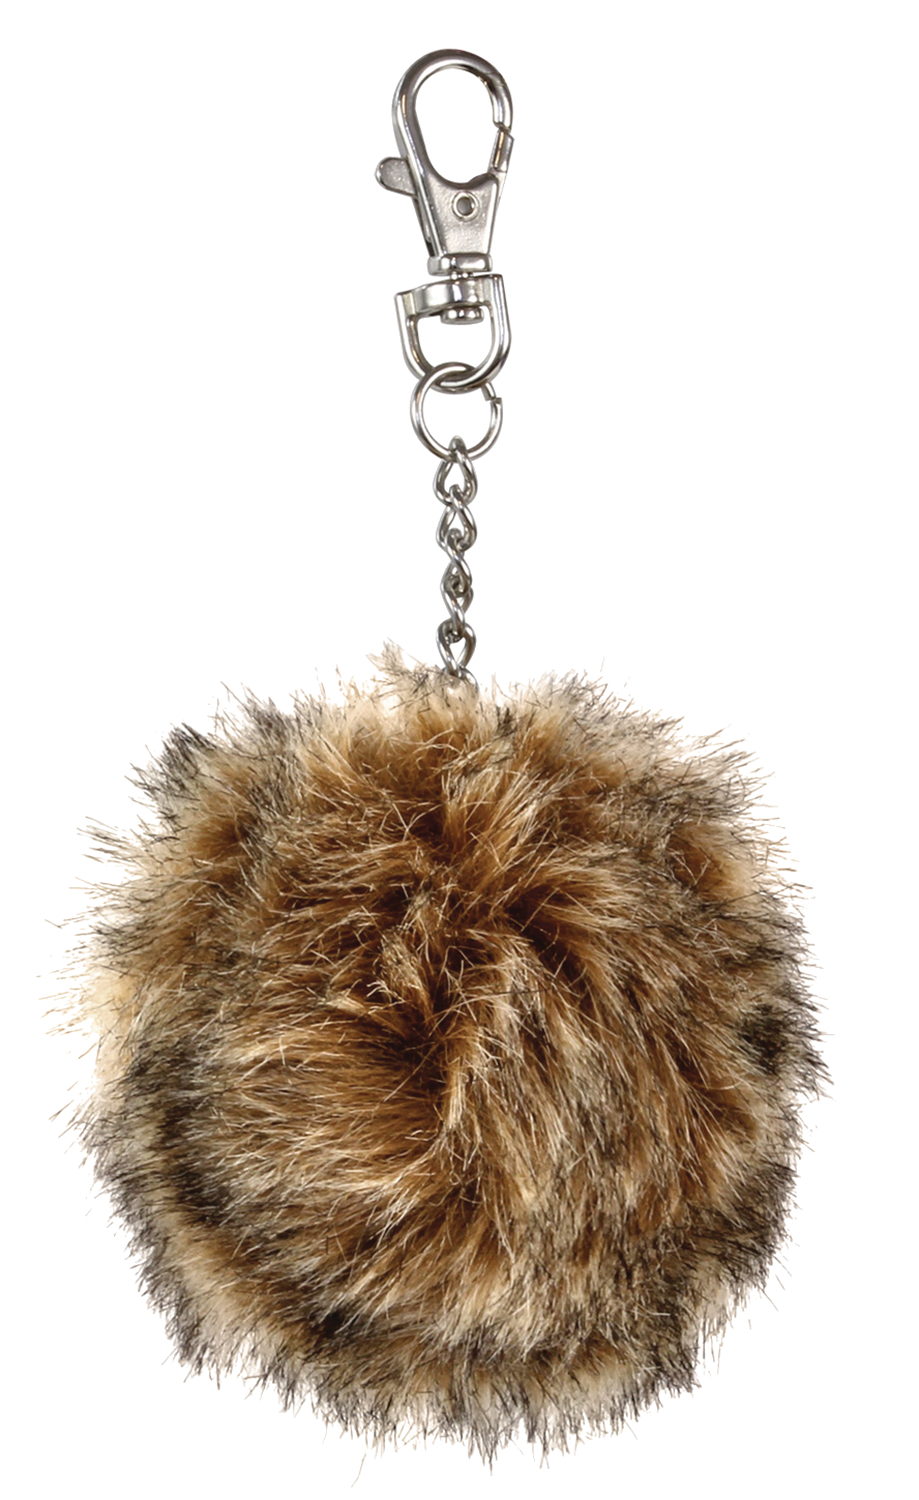 ST TOS TRIBBLE PLUSH KEYCHAIN 24CT DIS